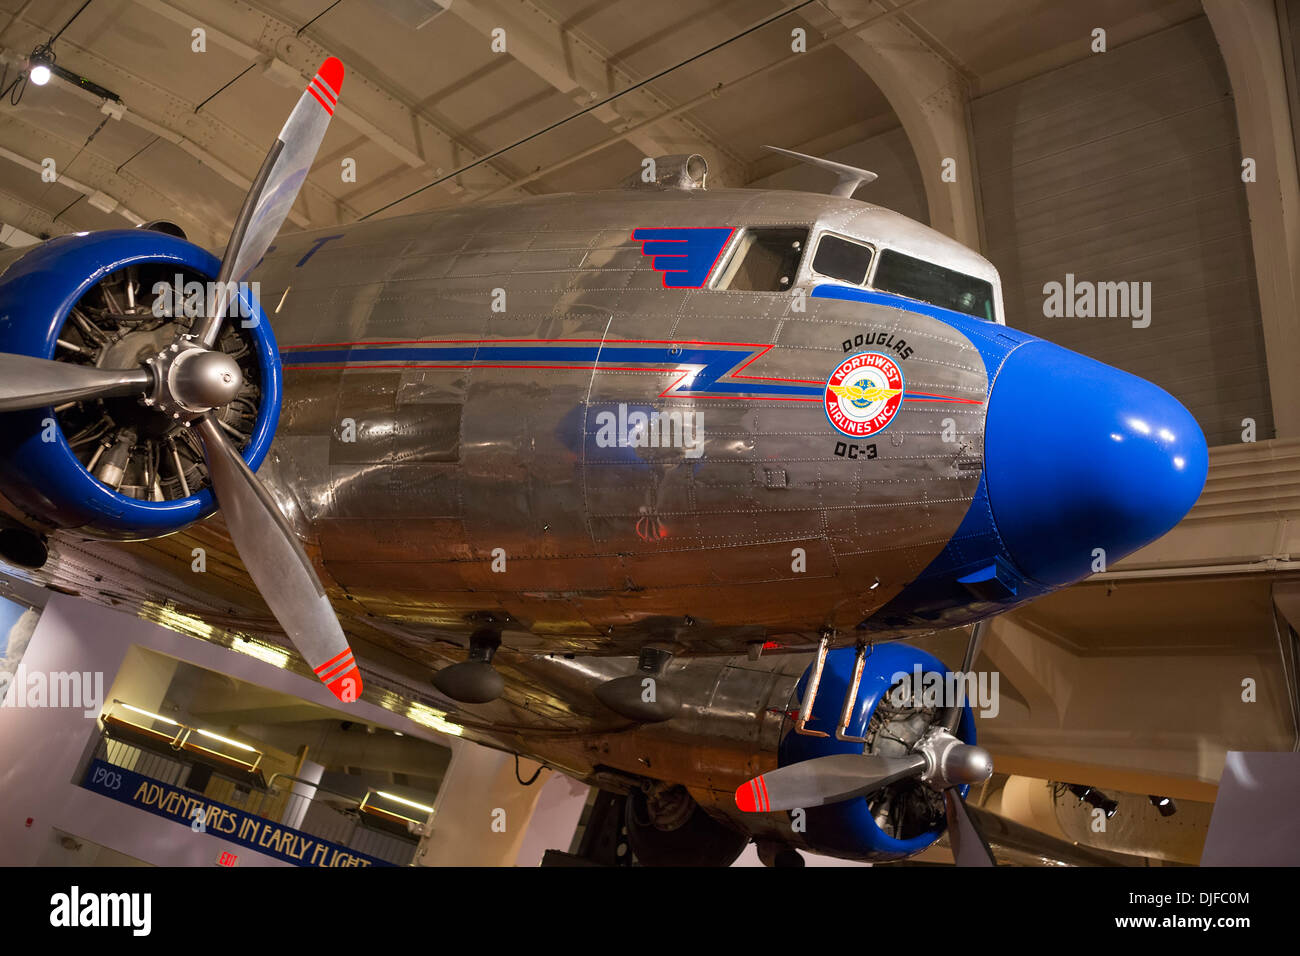 A Douglas DC-3 operated by Northwest Airlines on display at the Henry Ford Museum - Stock Image